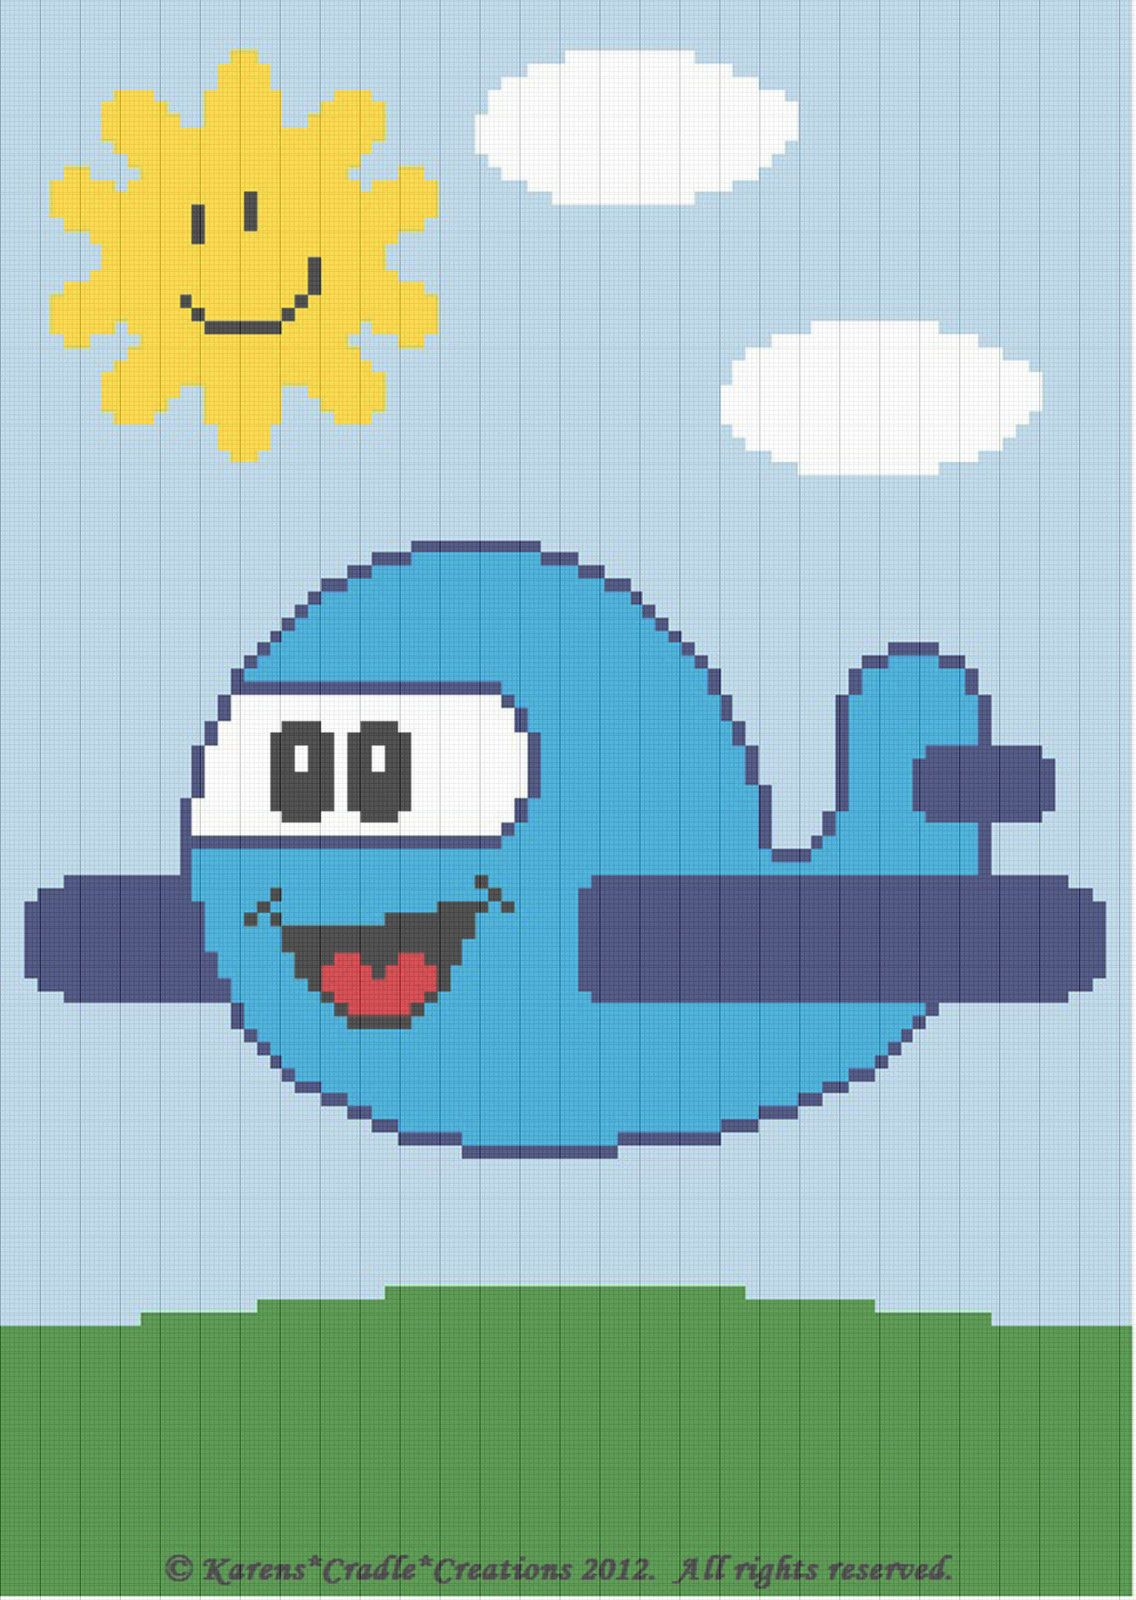 Crochet patterns airplane baby afghan graph pattern chart crochet patterns airplane baby afghan graph pattern chart bankloansurffo Gallery